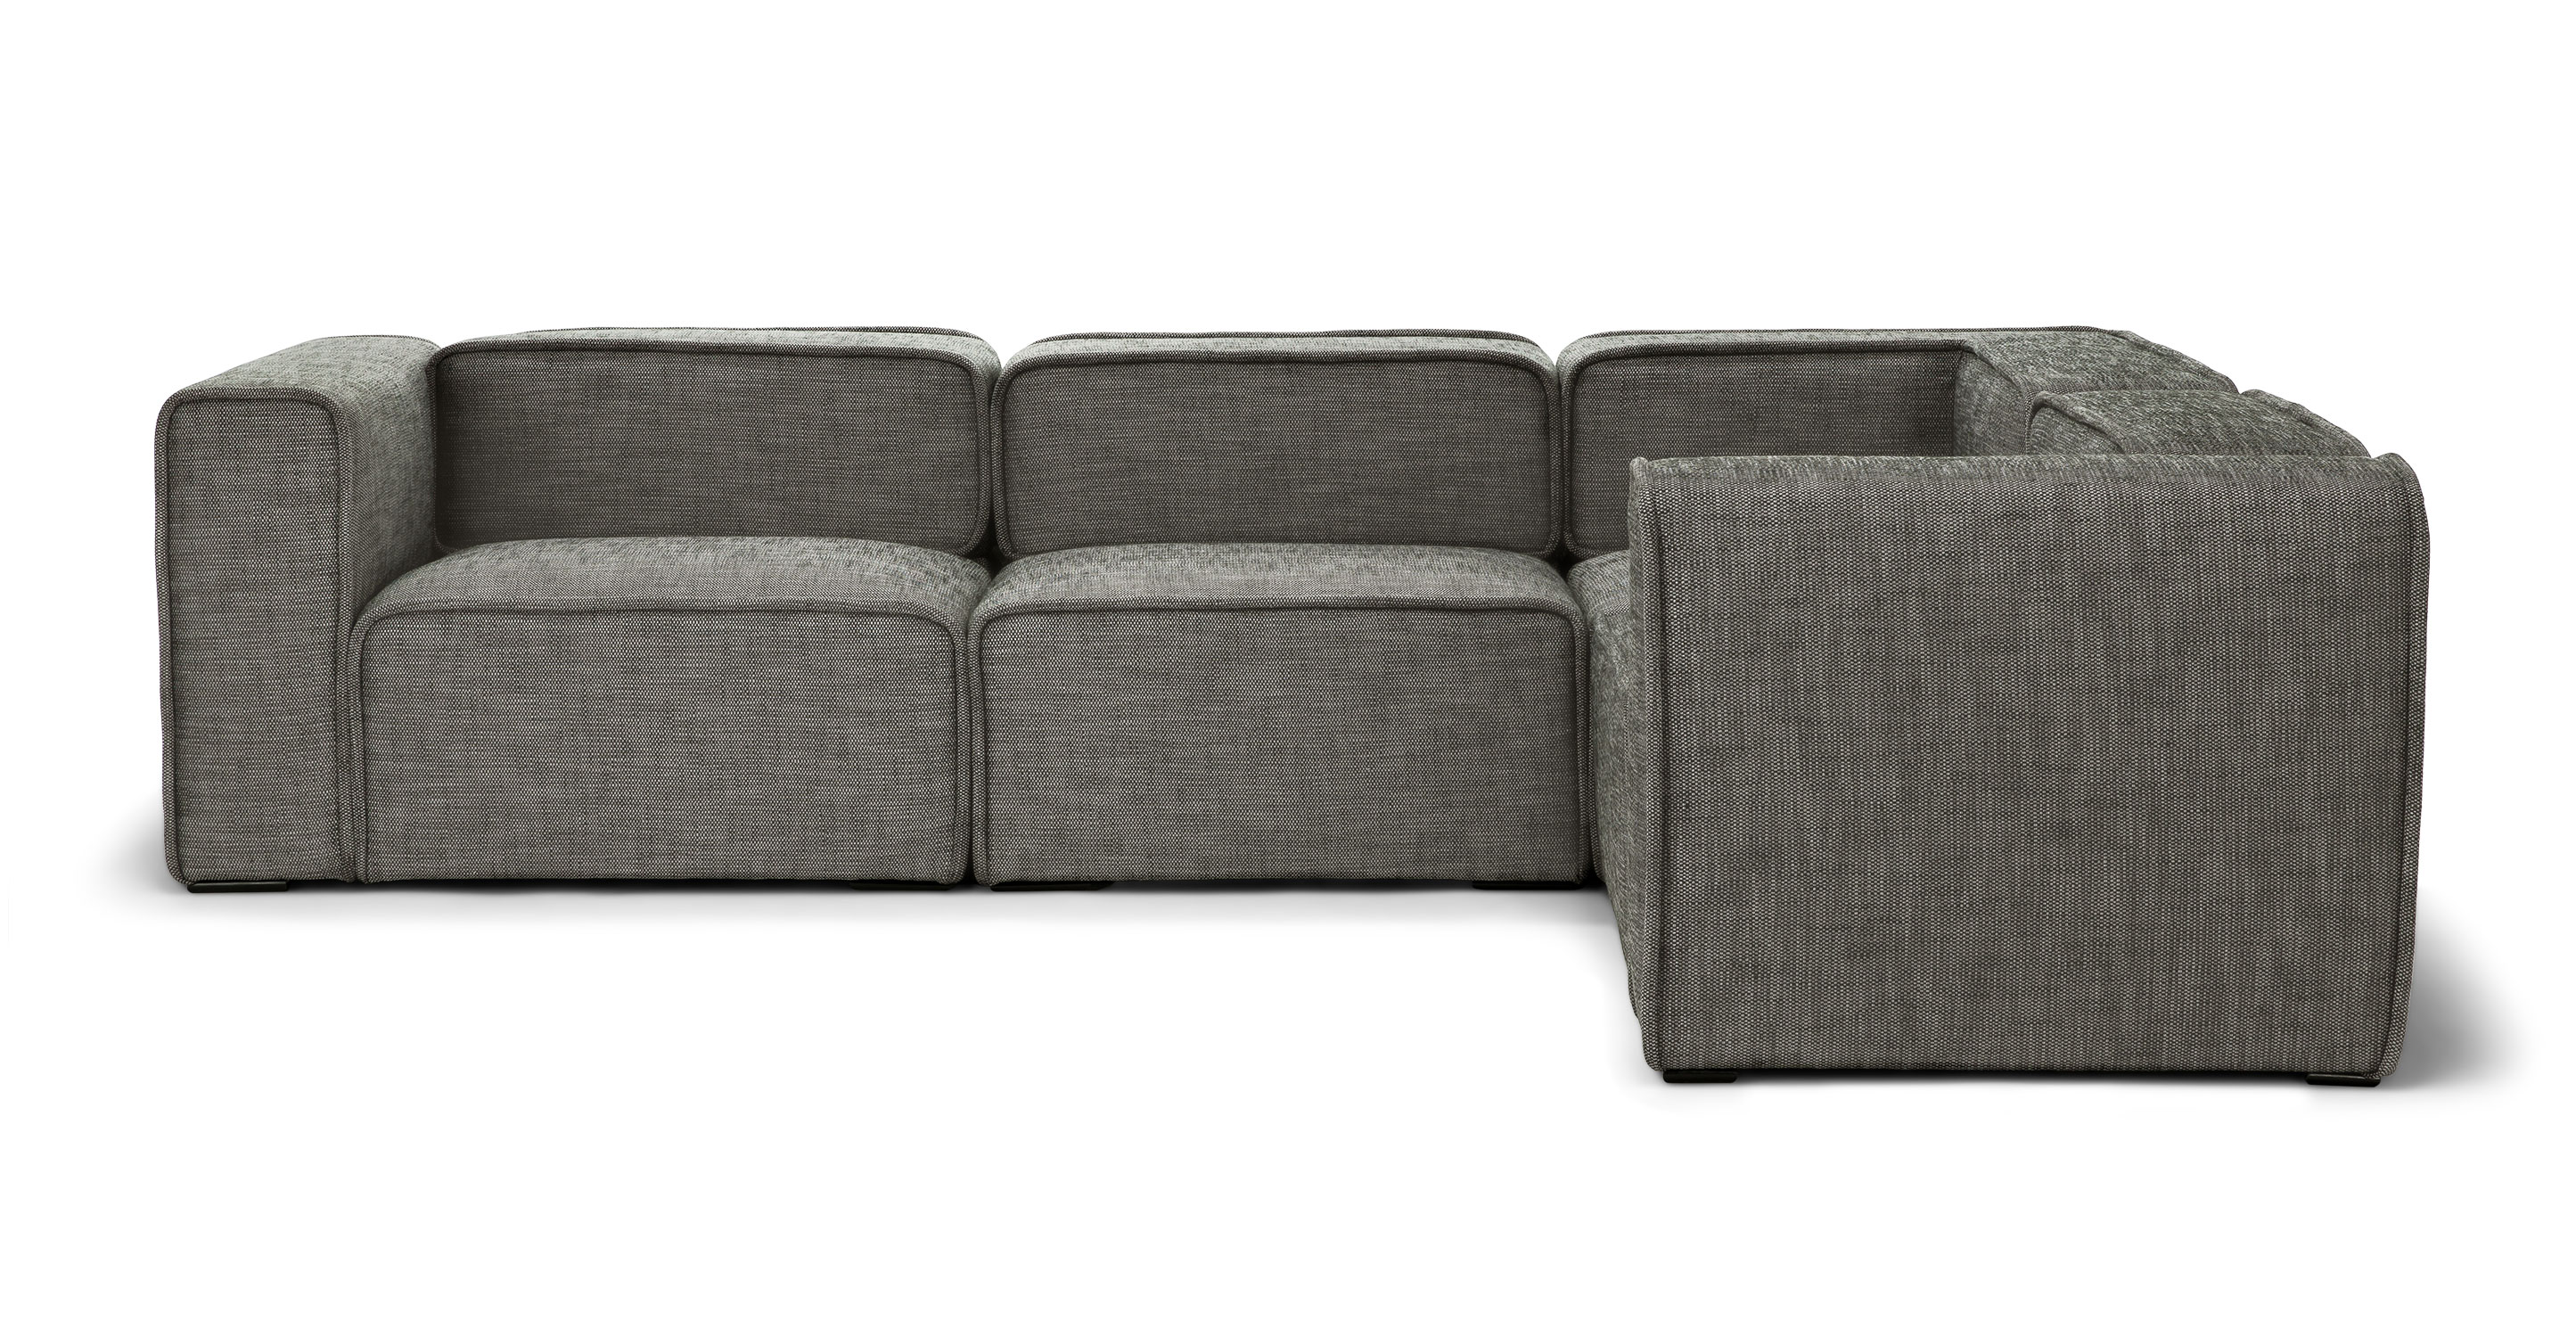 Cheap Modular Lounges The Best Modular Sofas Annual Guide Apartment Therapy